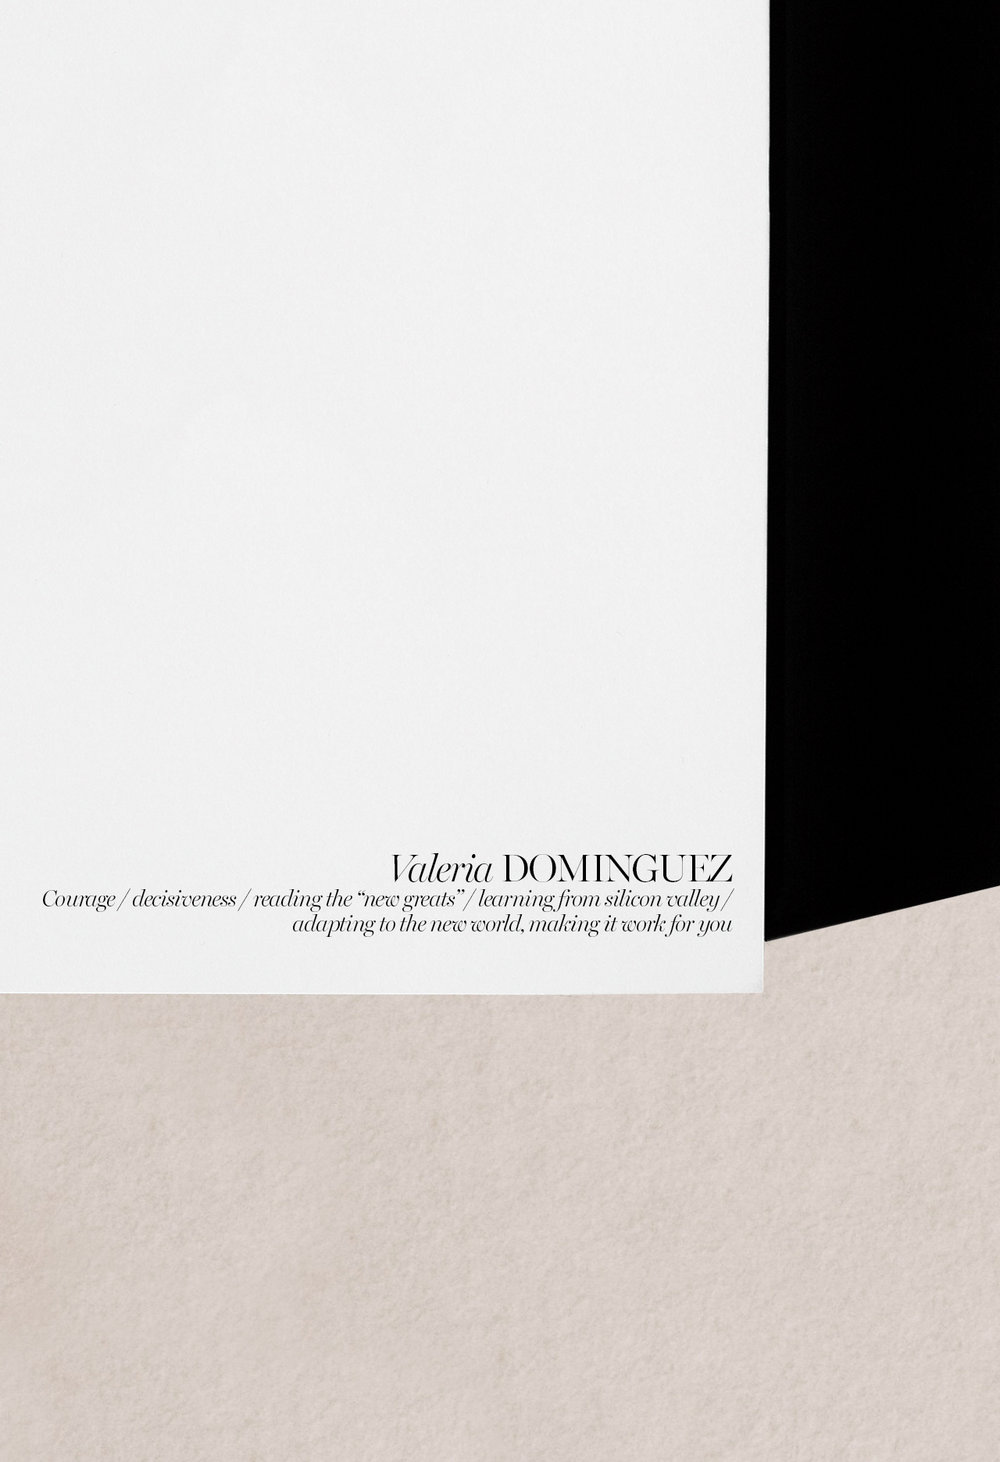 branding-valeria-dominguez-behance-3.jpg